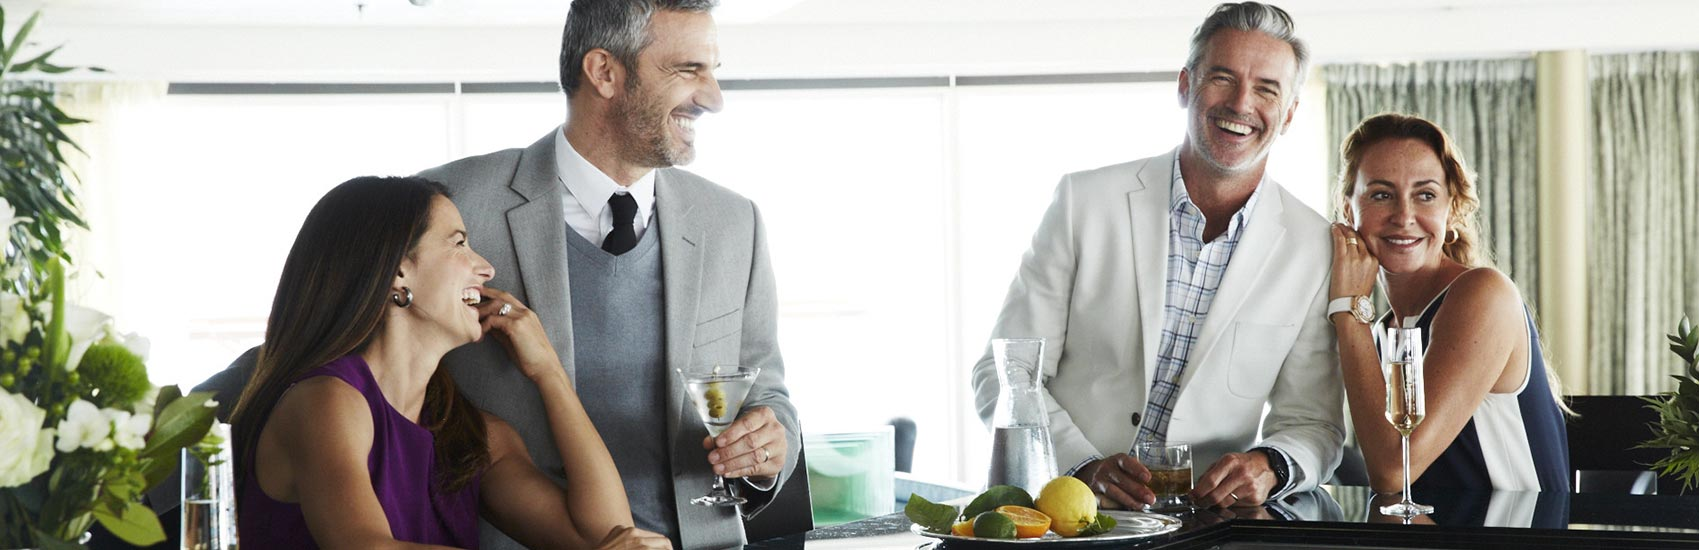 Set Sail in 2021 with Seabourn 3